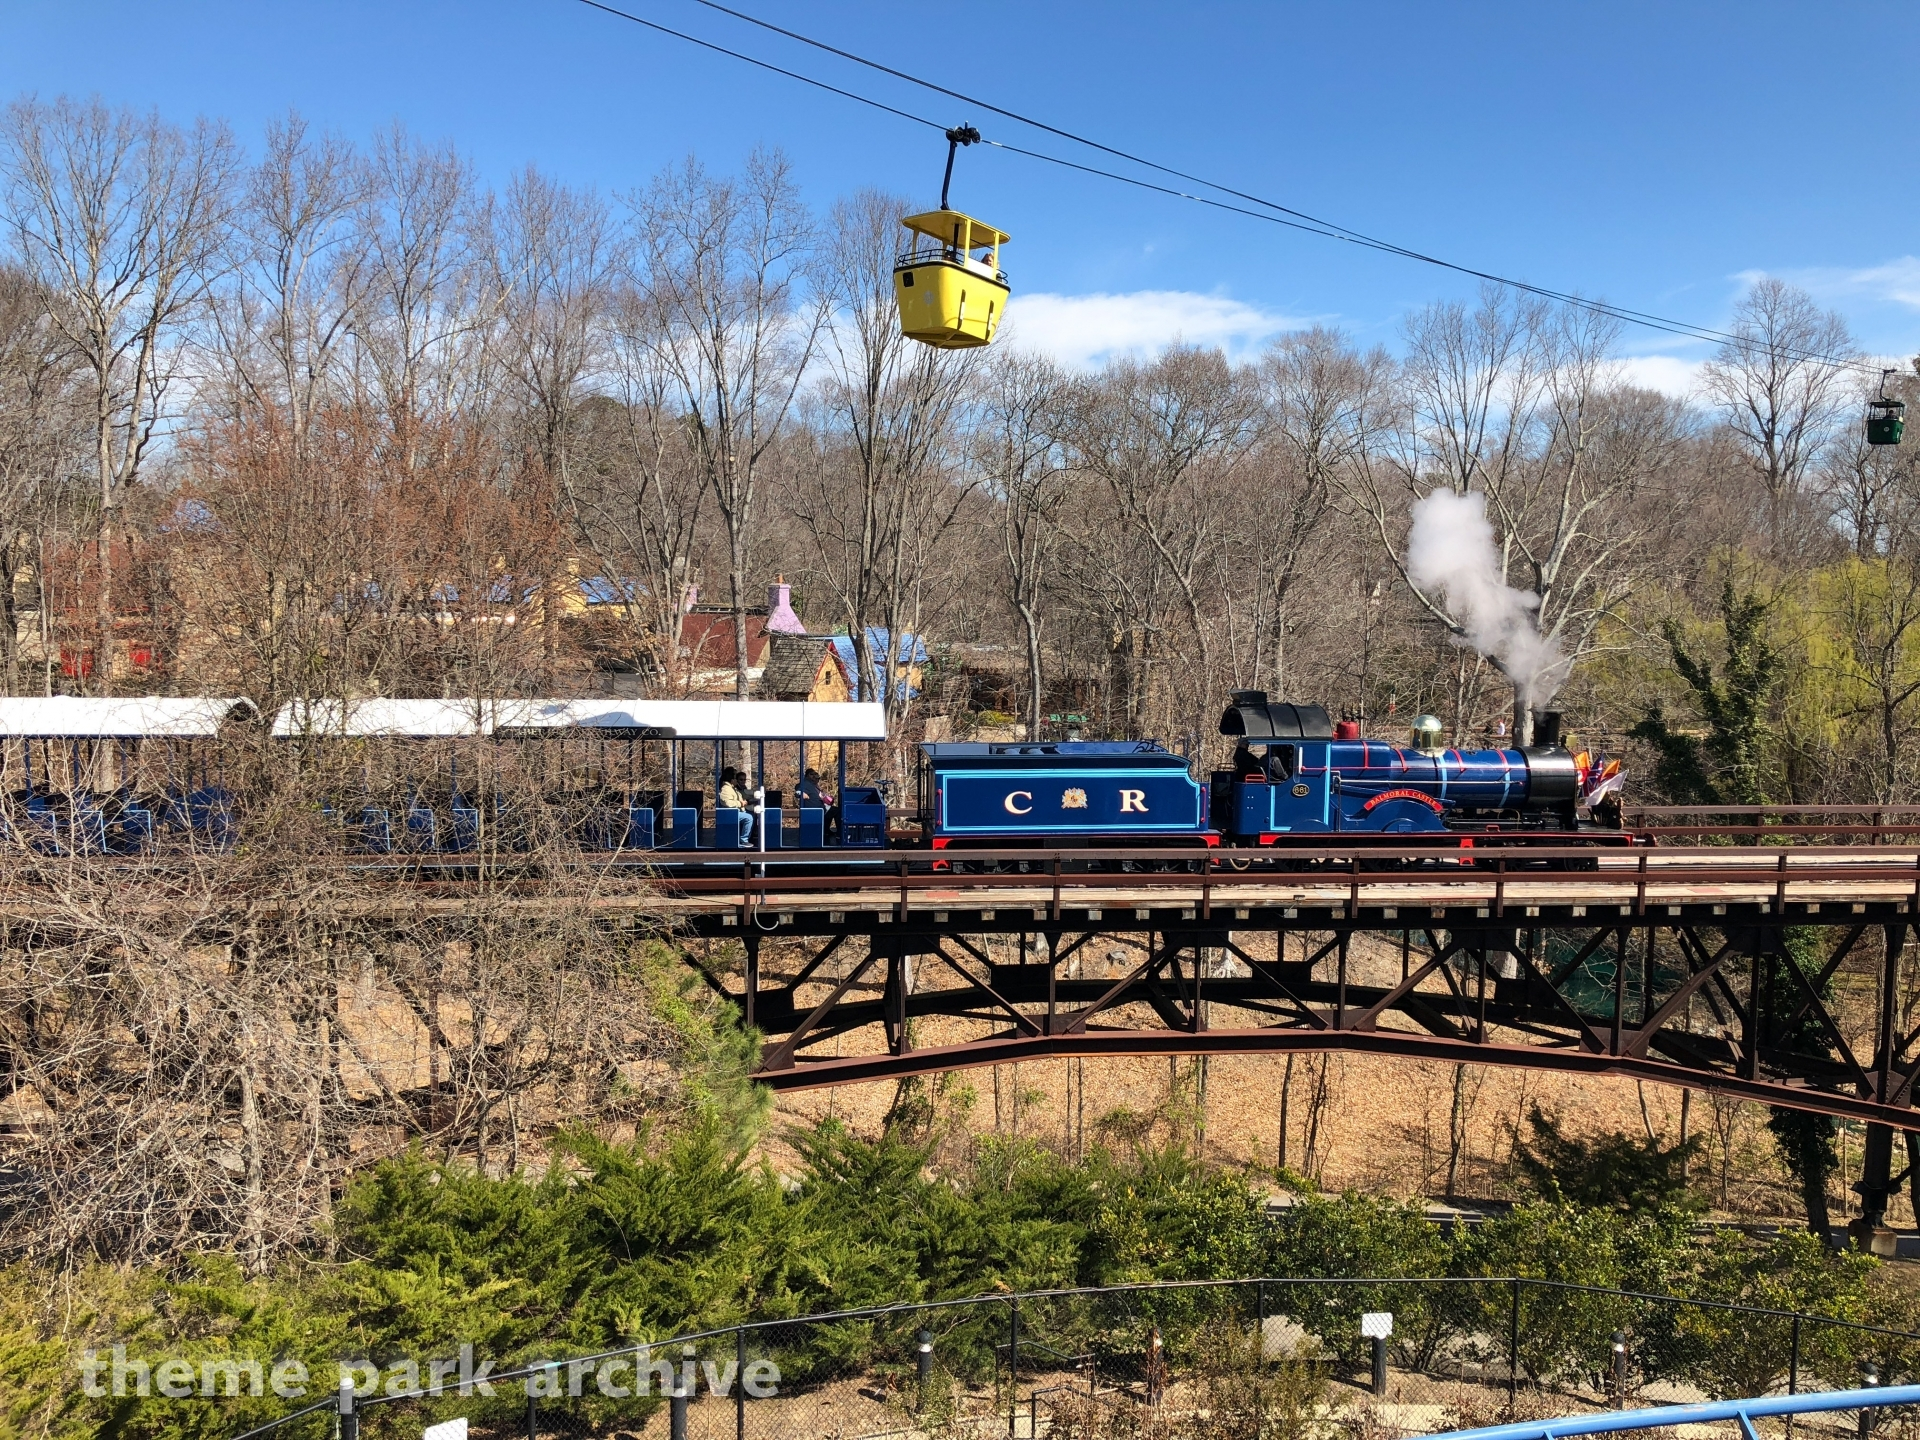 Busch Gardens Railway at Busch Gardens Williamsburg